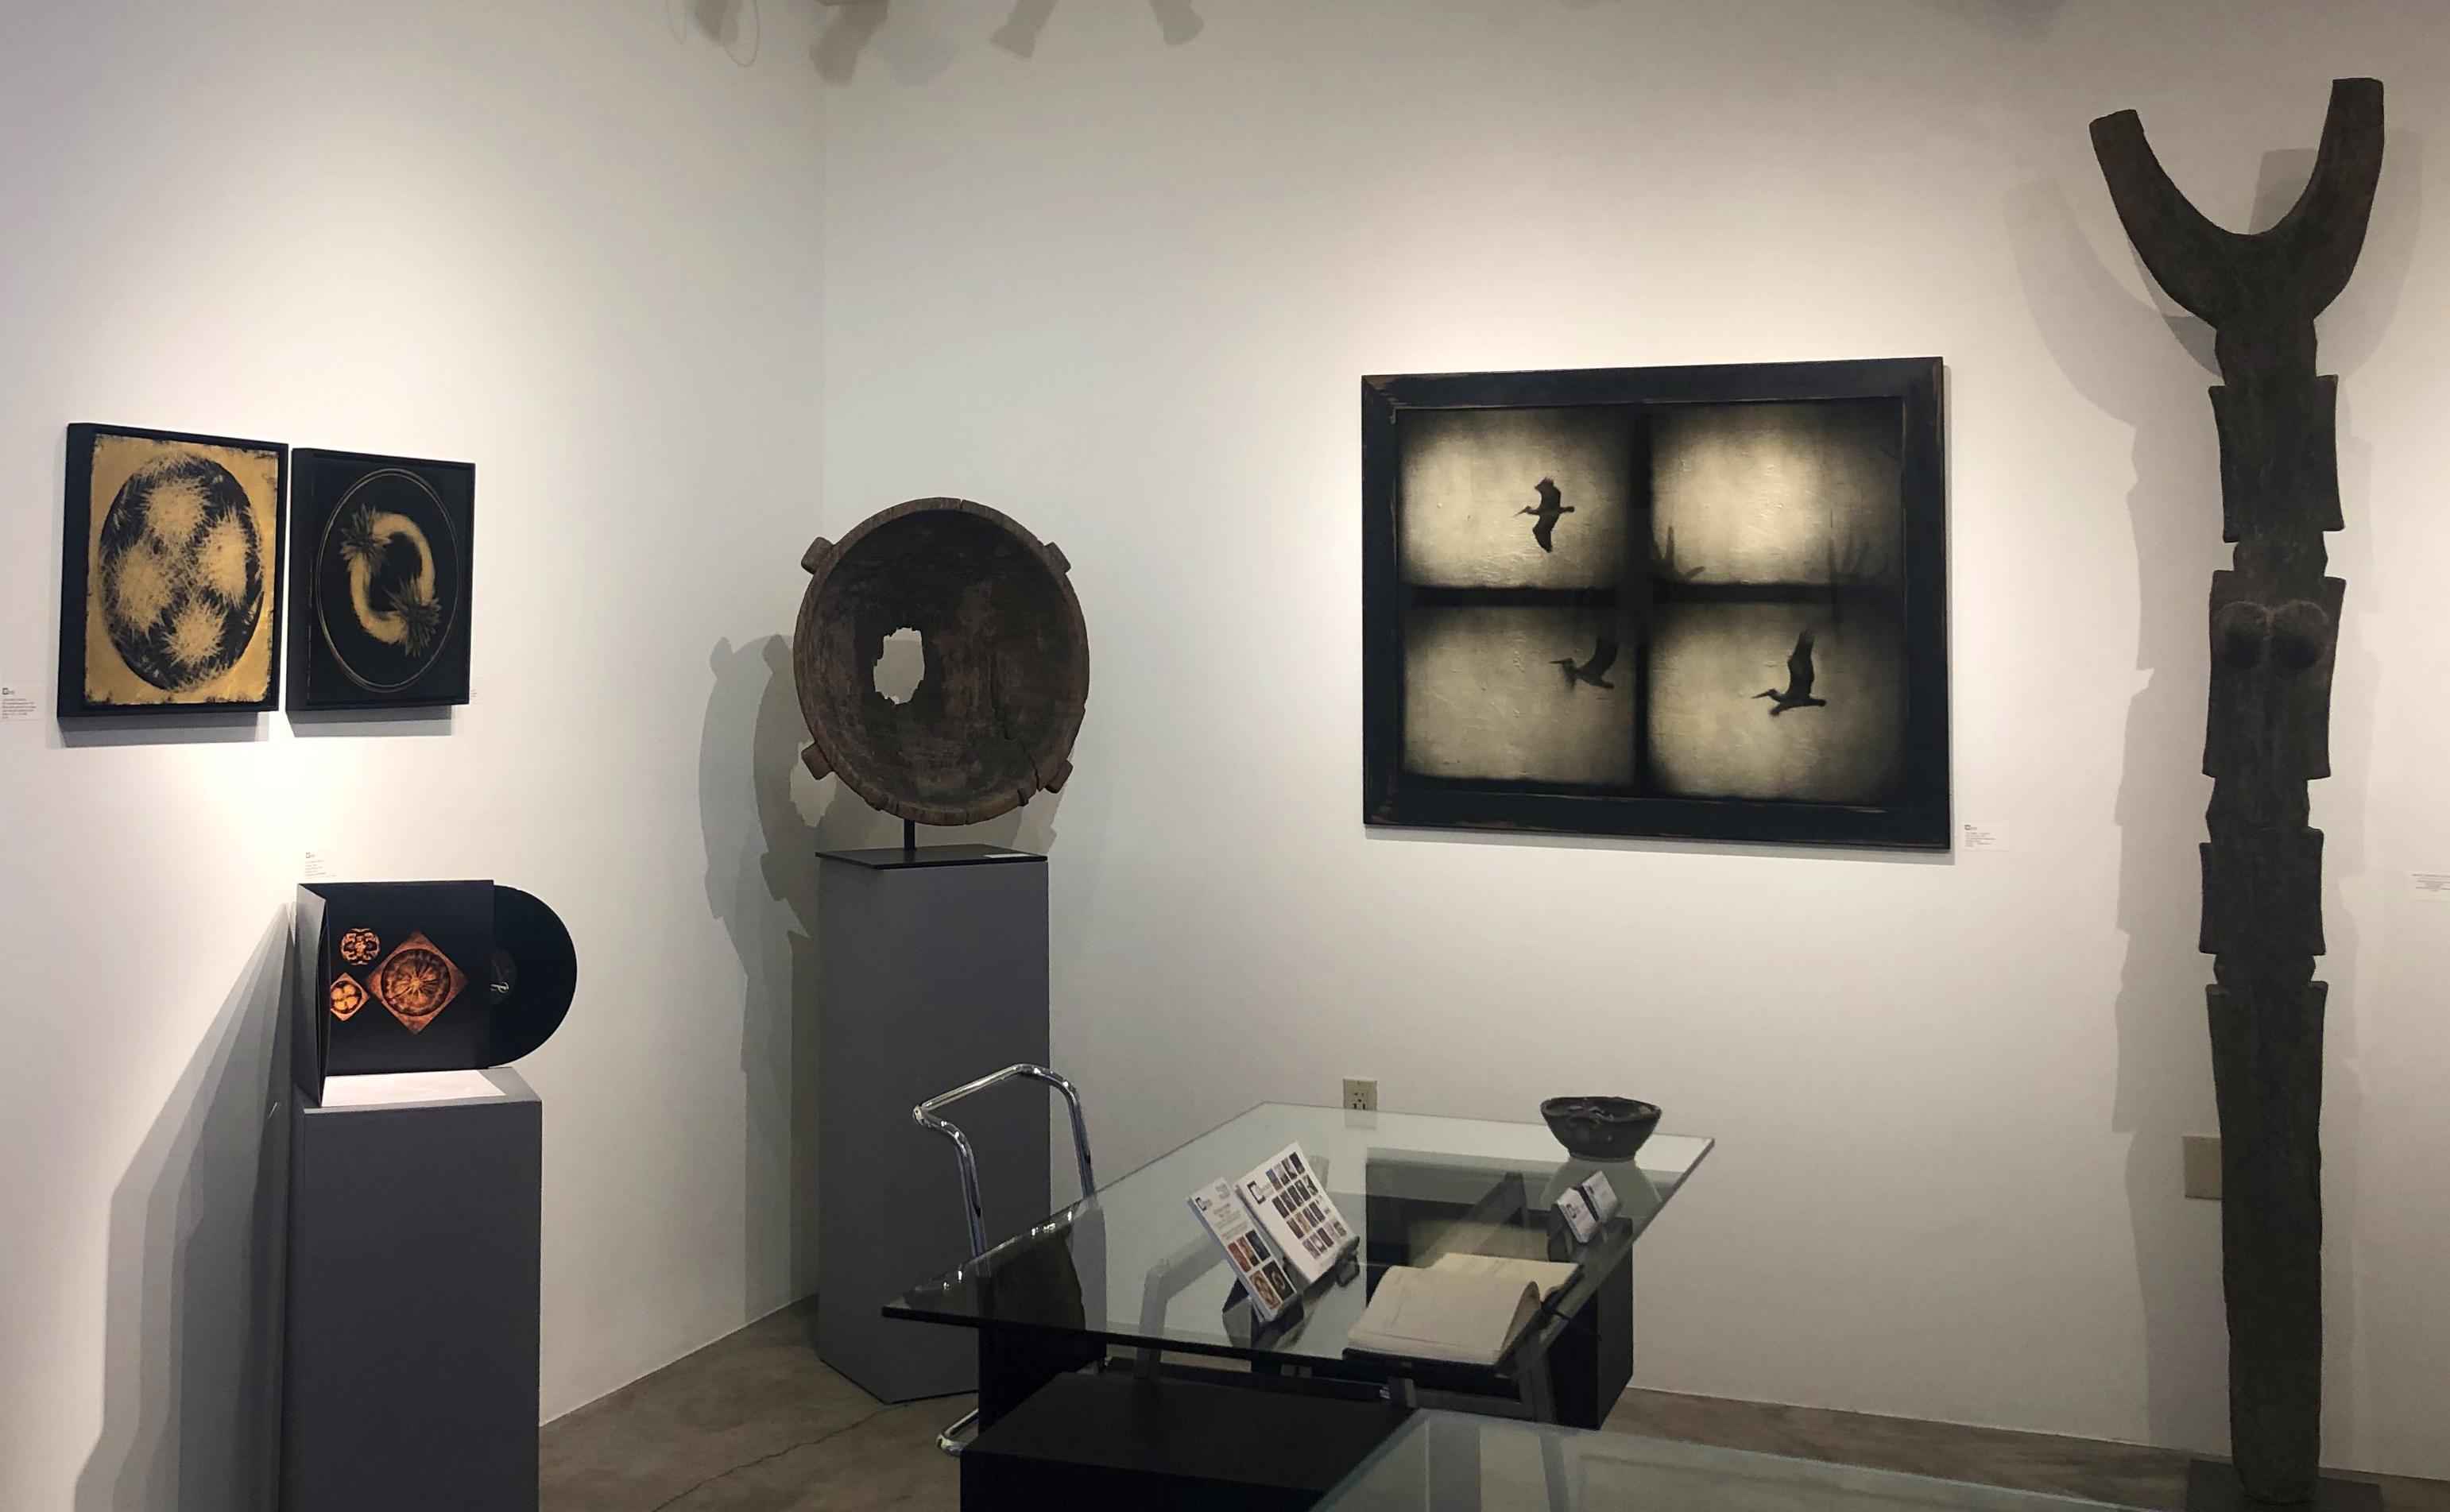 Installation Gallery image of the exhibition Louviere and Vanessa, Retroactive